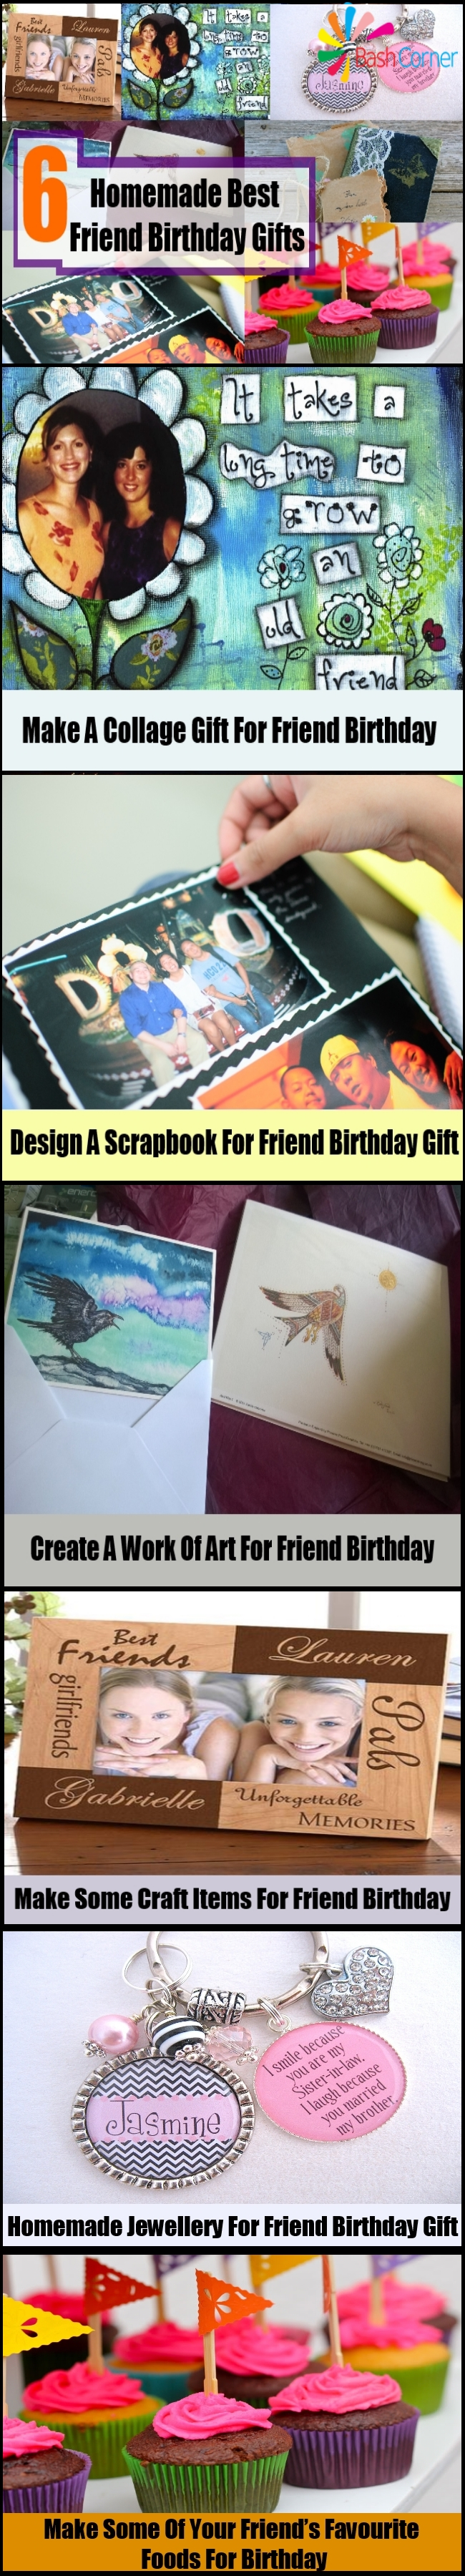 homemade 21st birthday gift ideas for him 147 best relationship